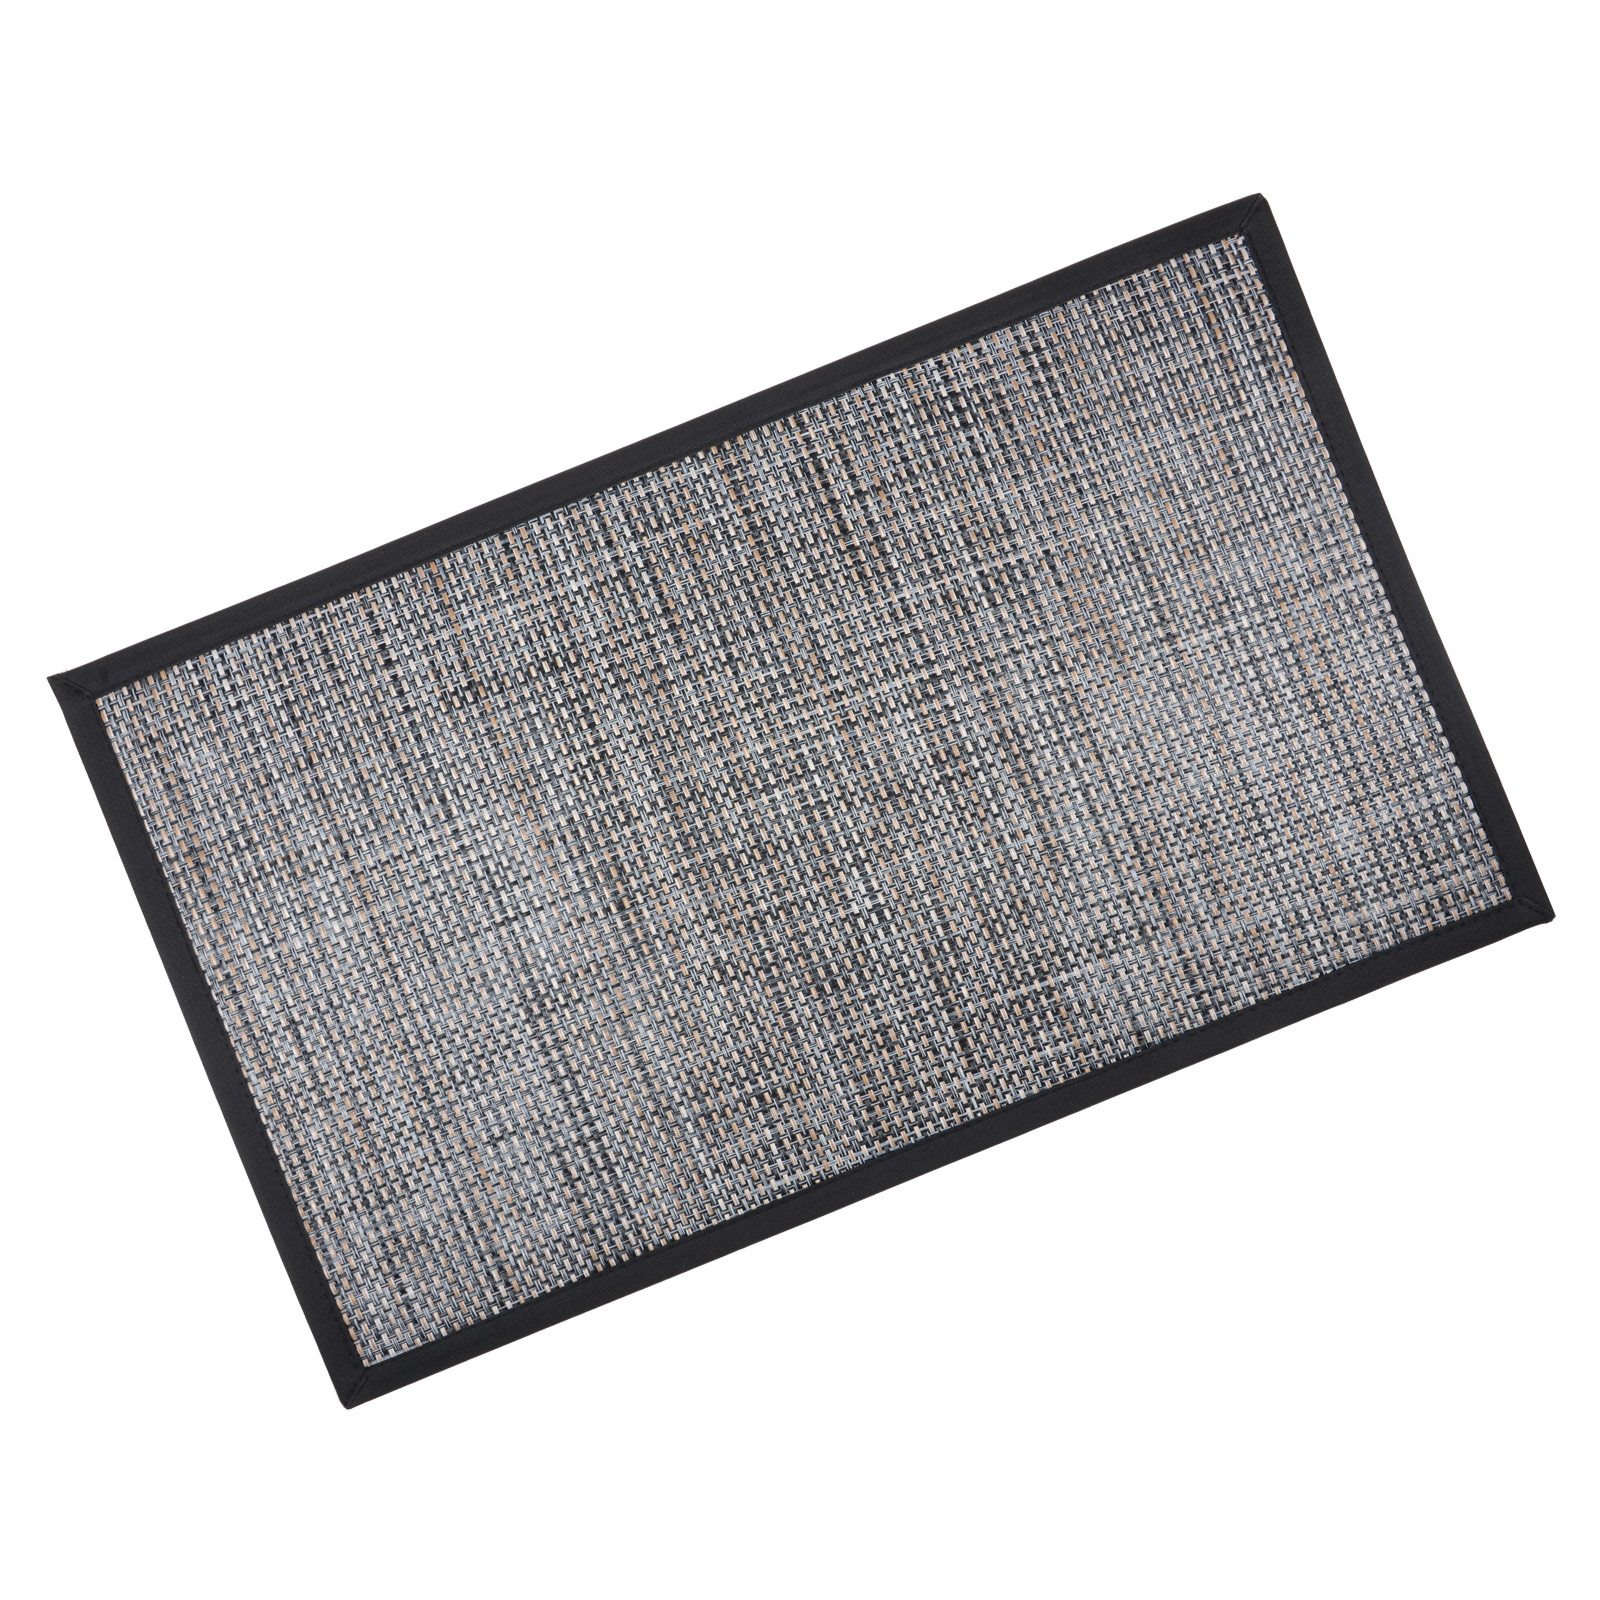 modern door mats designer front door mats  modern rugs carpets  - modern door mat buy garden boots welcome door mat in